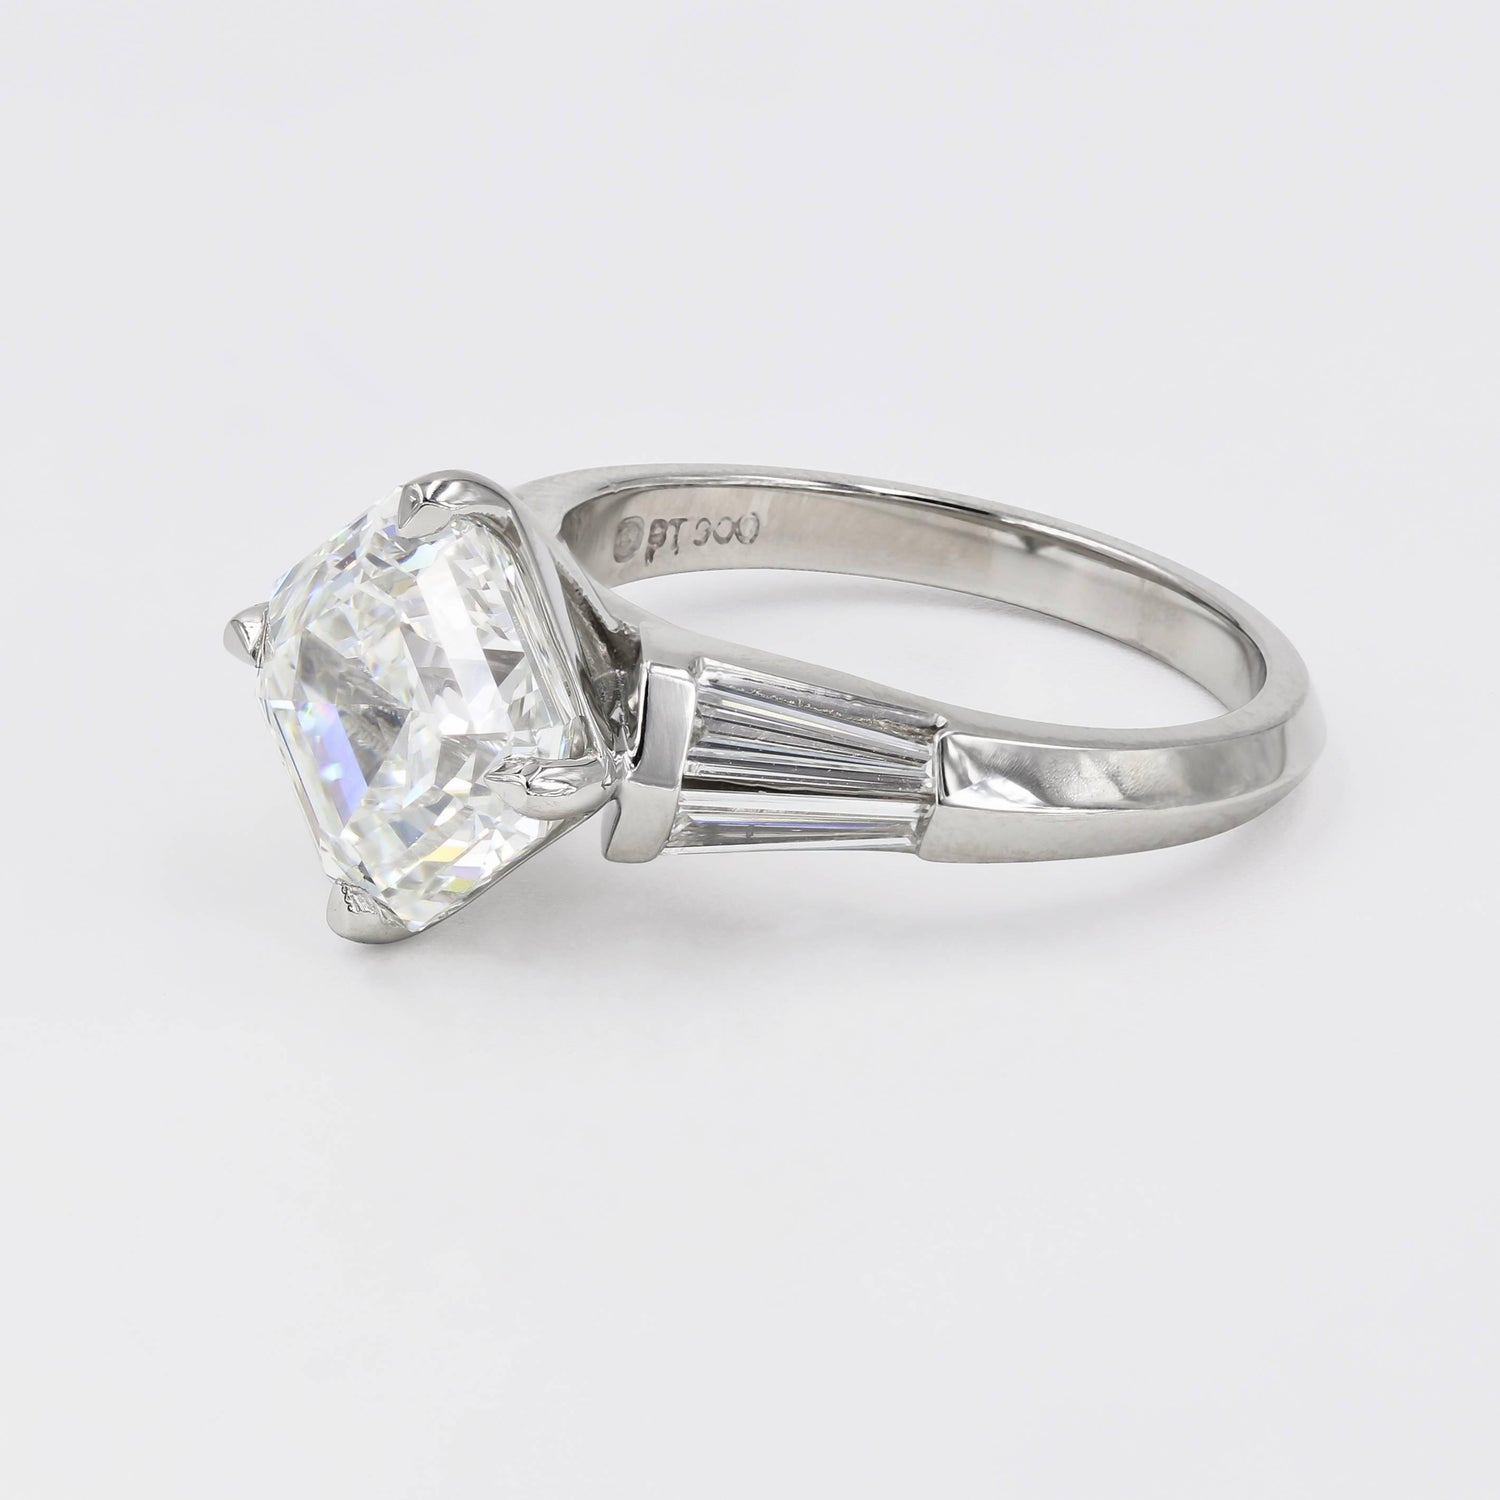 cut engagement diamond asscher classic s specialist campbell finest ring solitaire the dublin jewellers products rings